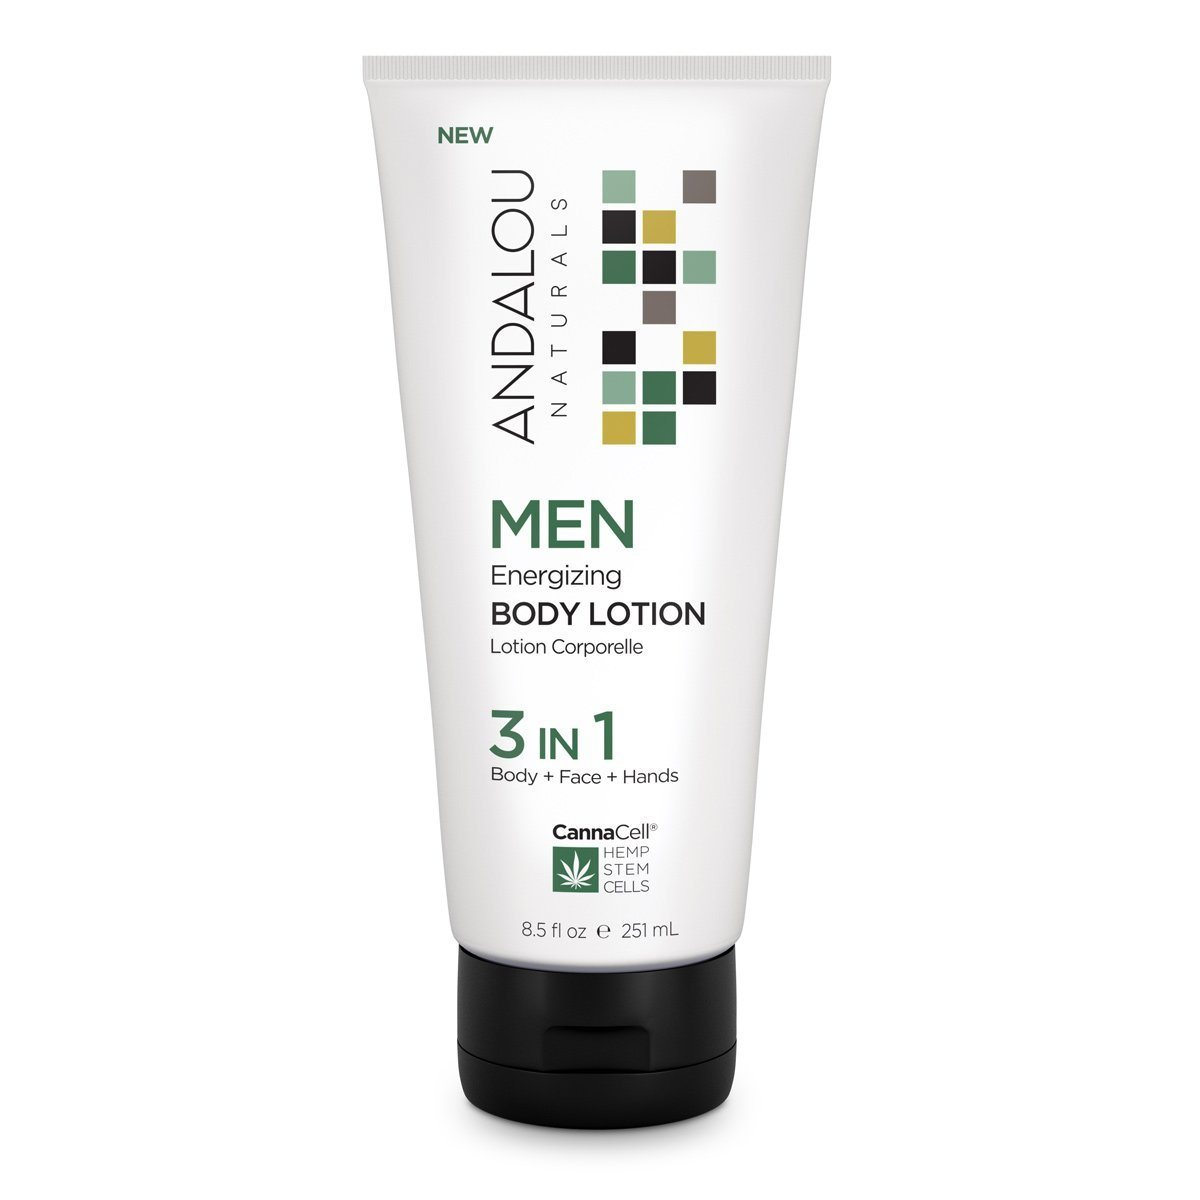 Personal Care - Andalou Naturals - Men's Energizing Body Lotion 3-in-1, 251mL